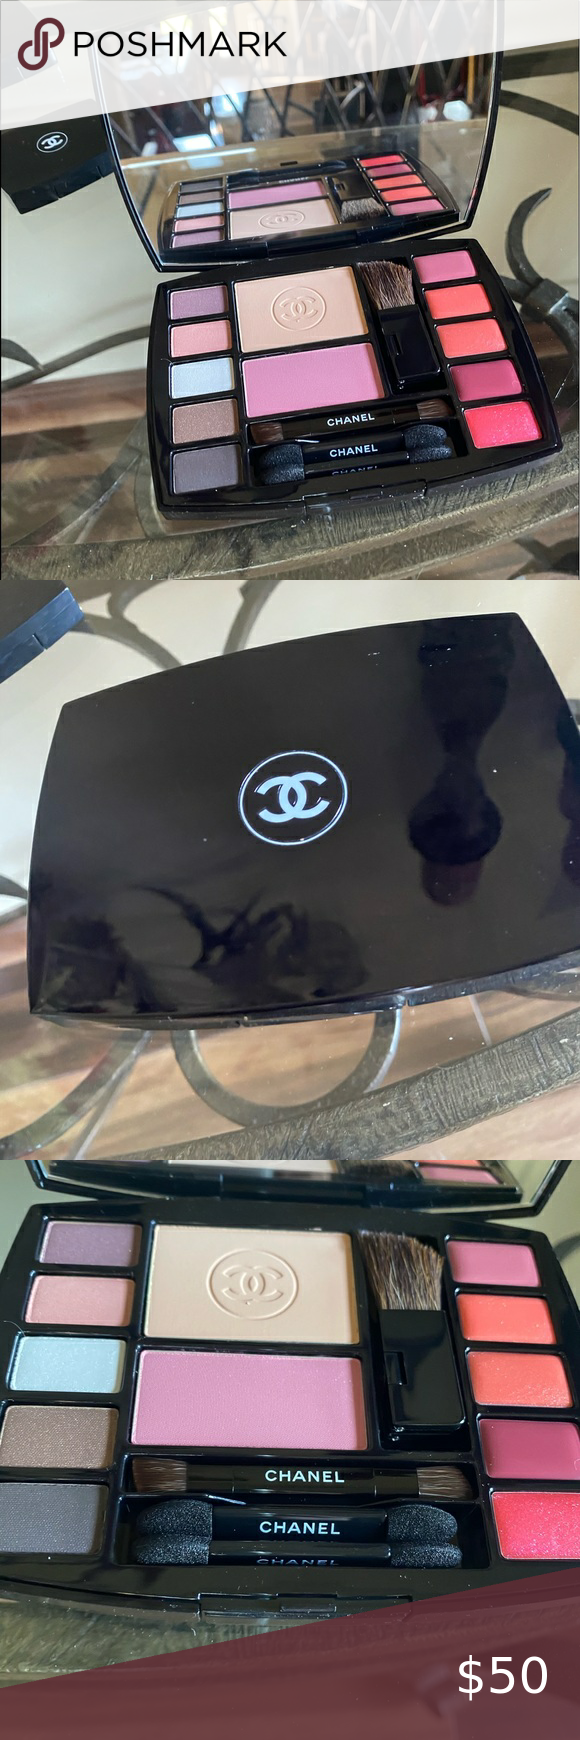 Chanel Travel Makeup Palette. in 2020 Travel makeup